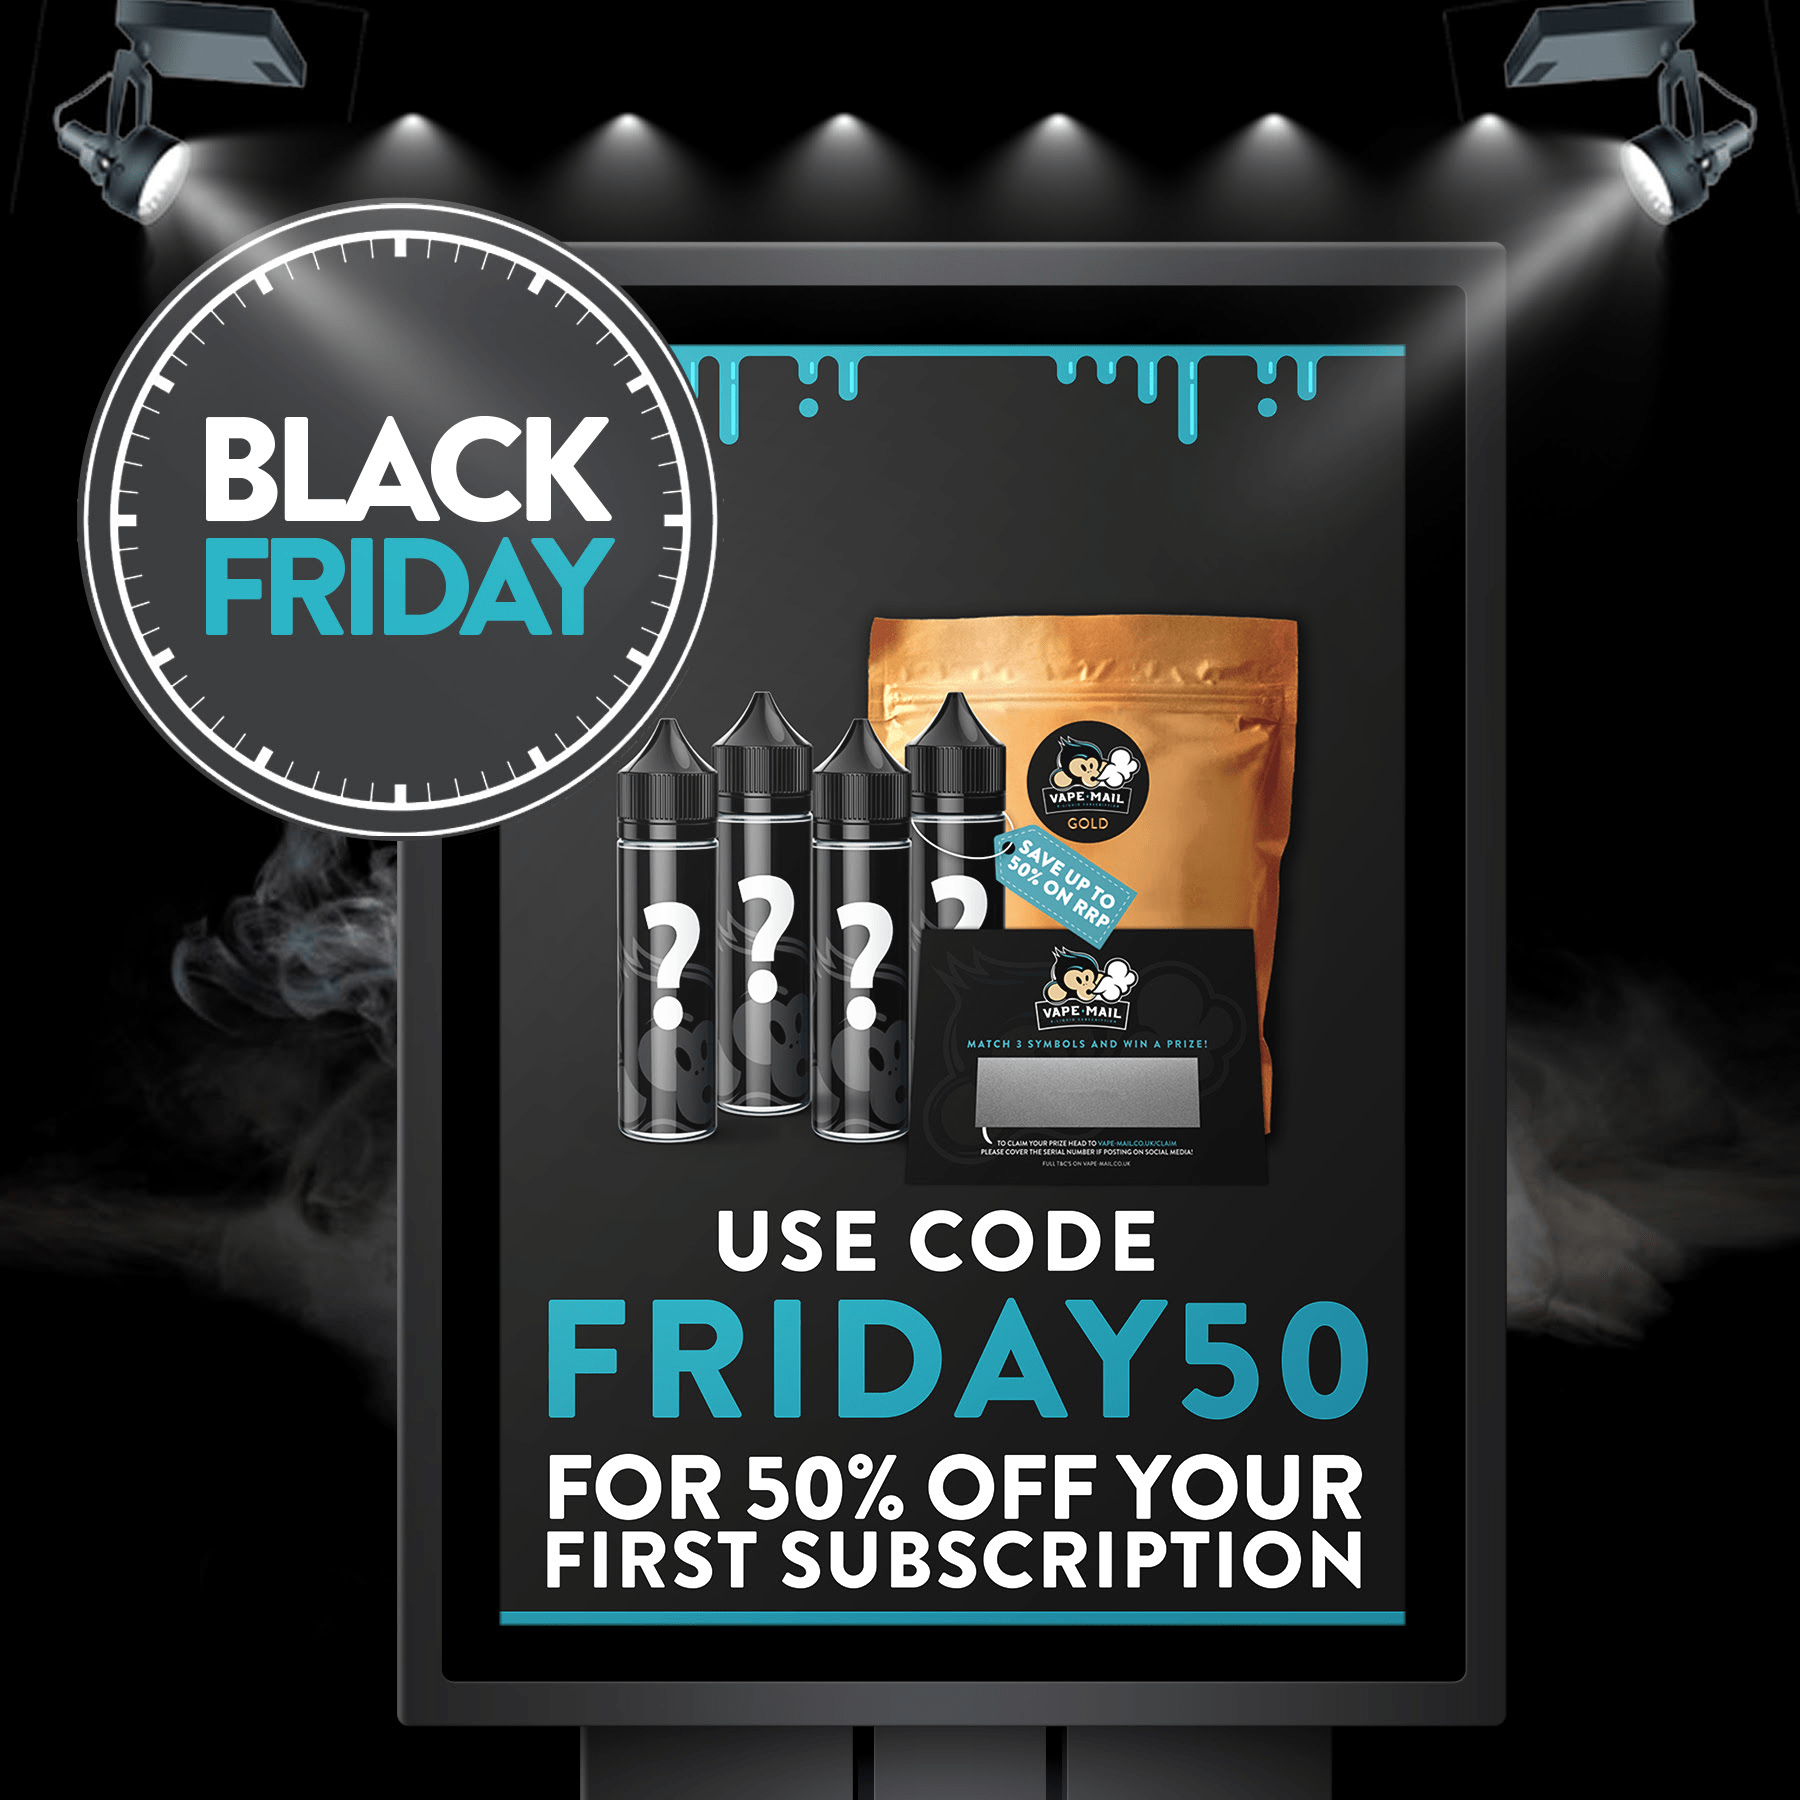 Vape Mail Black Friday 2018 Deals – Get 50% OFF Your Subscription + 20% OFF for Mystery Box for Subscribers!